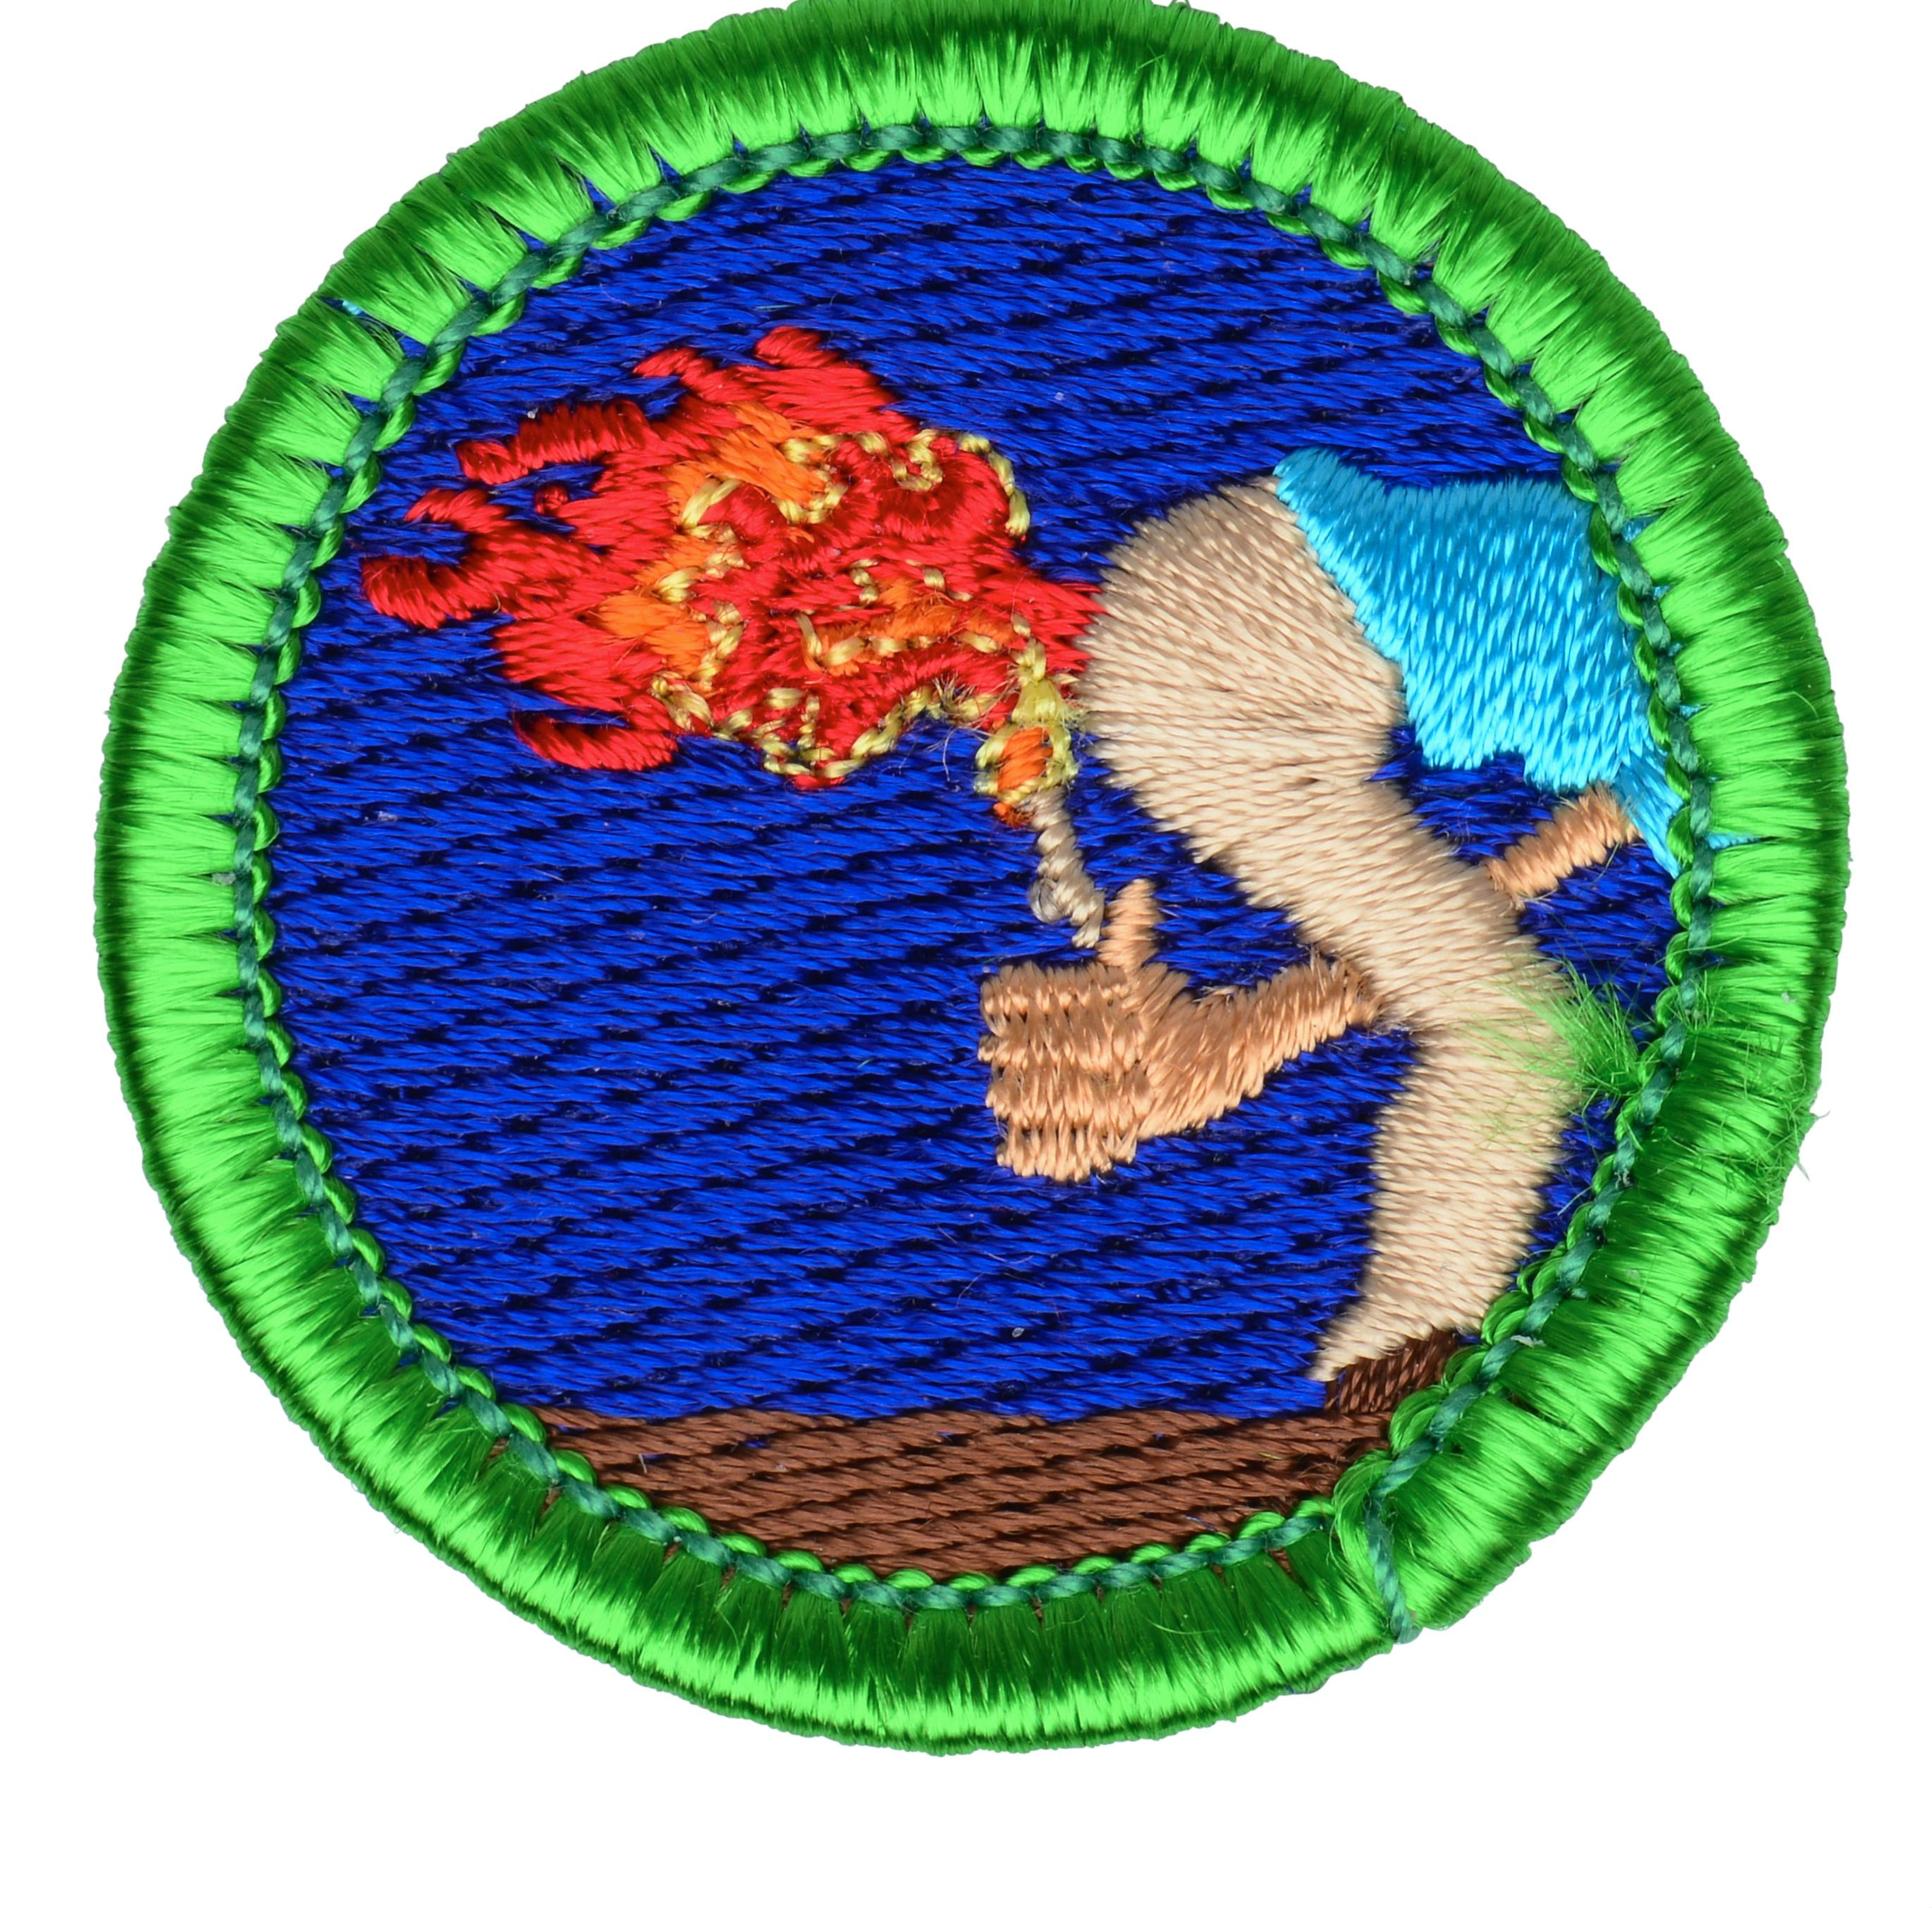 Patches :: Spoof Patches :: Spoof Merit Badges :: Fart Lighting Merit Badge